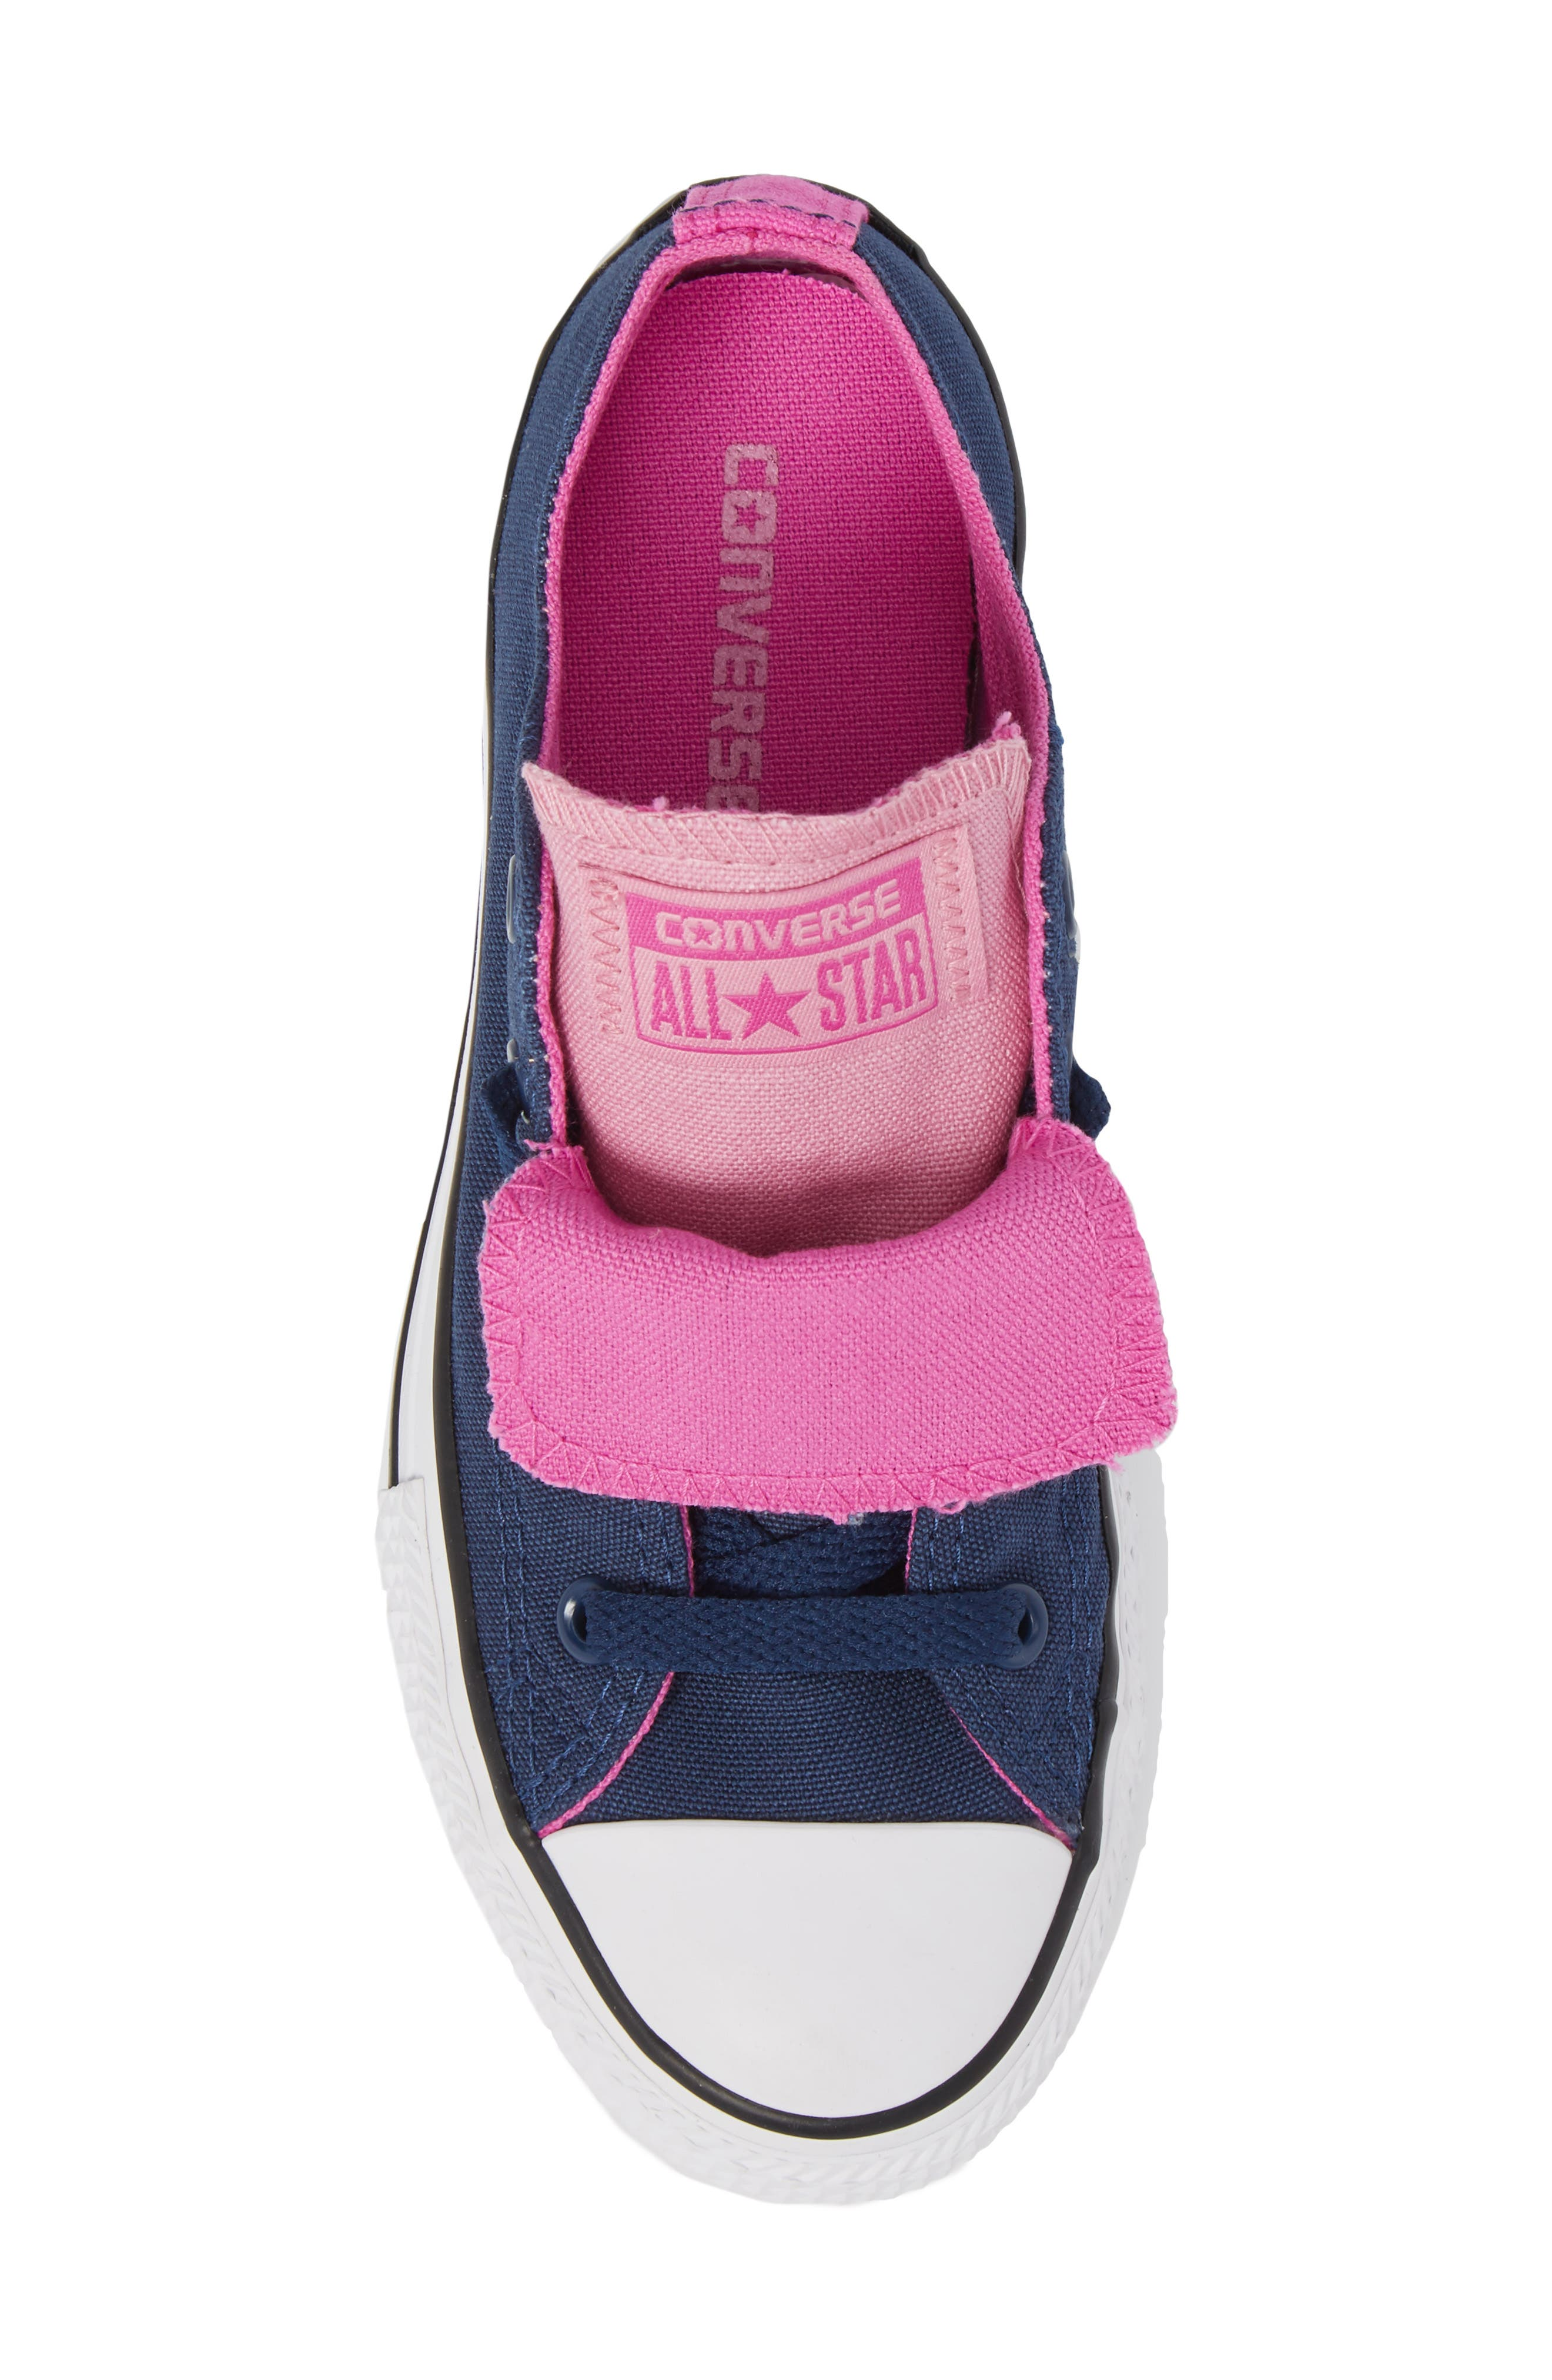 All Star<sup>®</sup> Double Tongue Sneaker,                             Alternate thumbnail 5, color,                             Navy